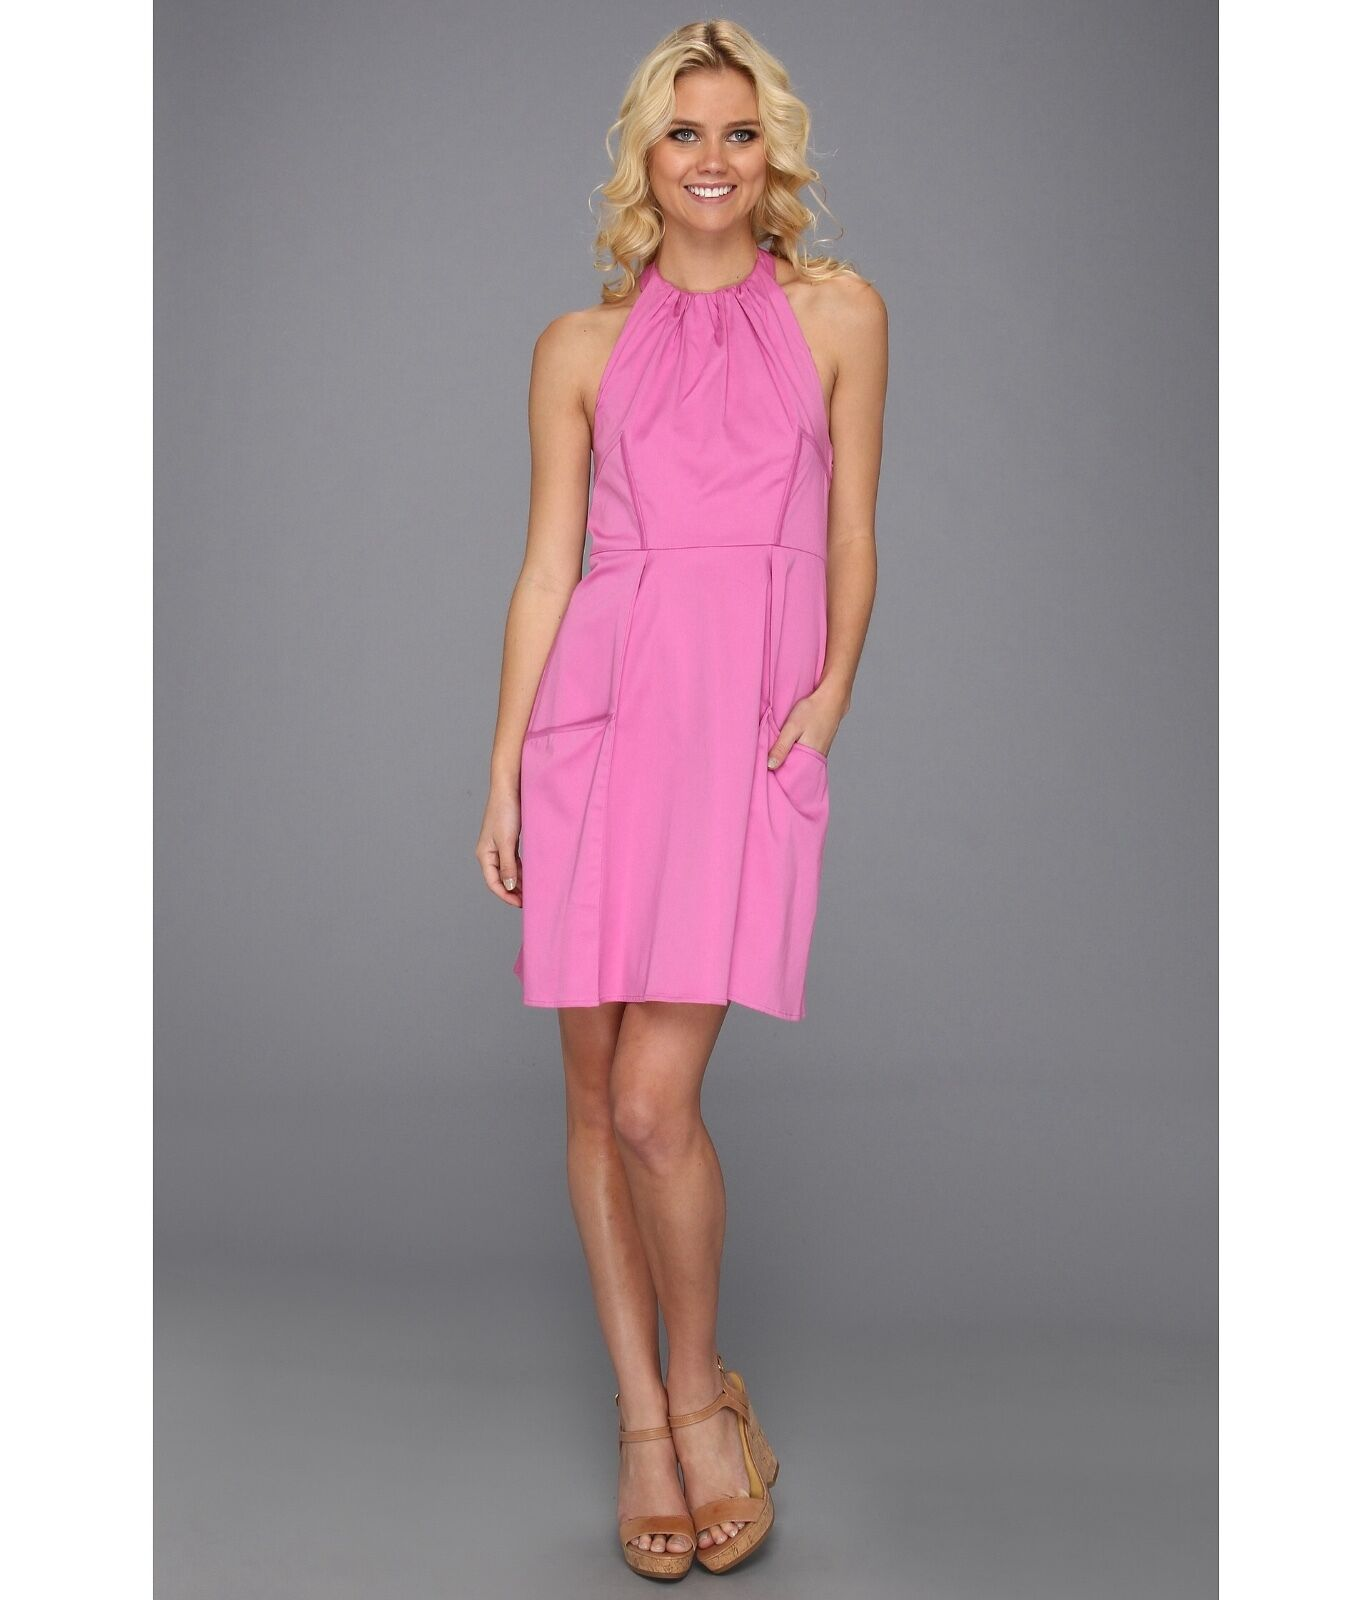 Jessica Simpson  Sleeveless  Women's Size 8 Halter Dress Super Pink